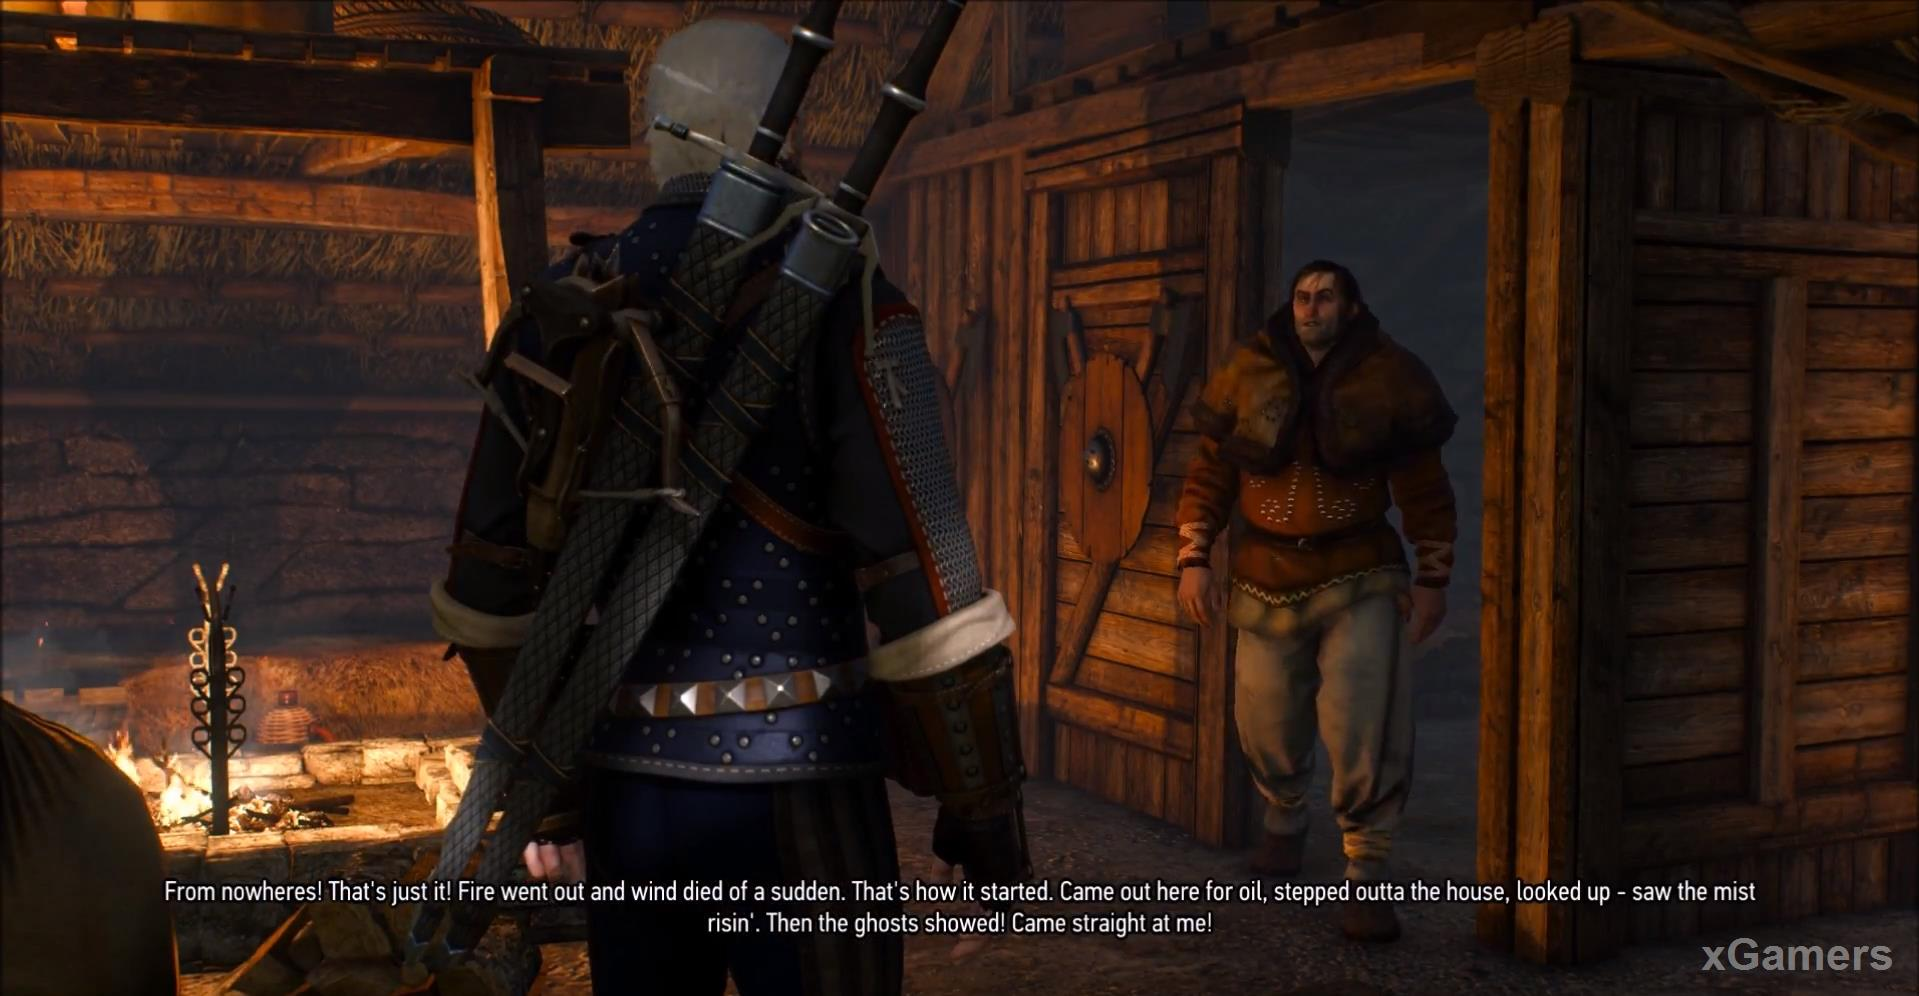 Completing quests in the game the witcher 3